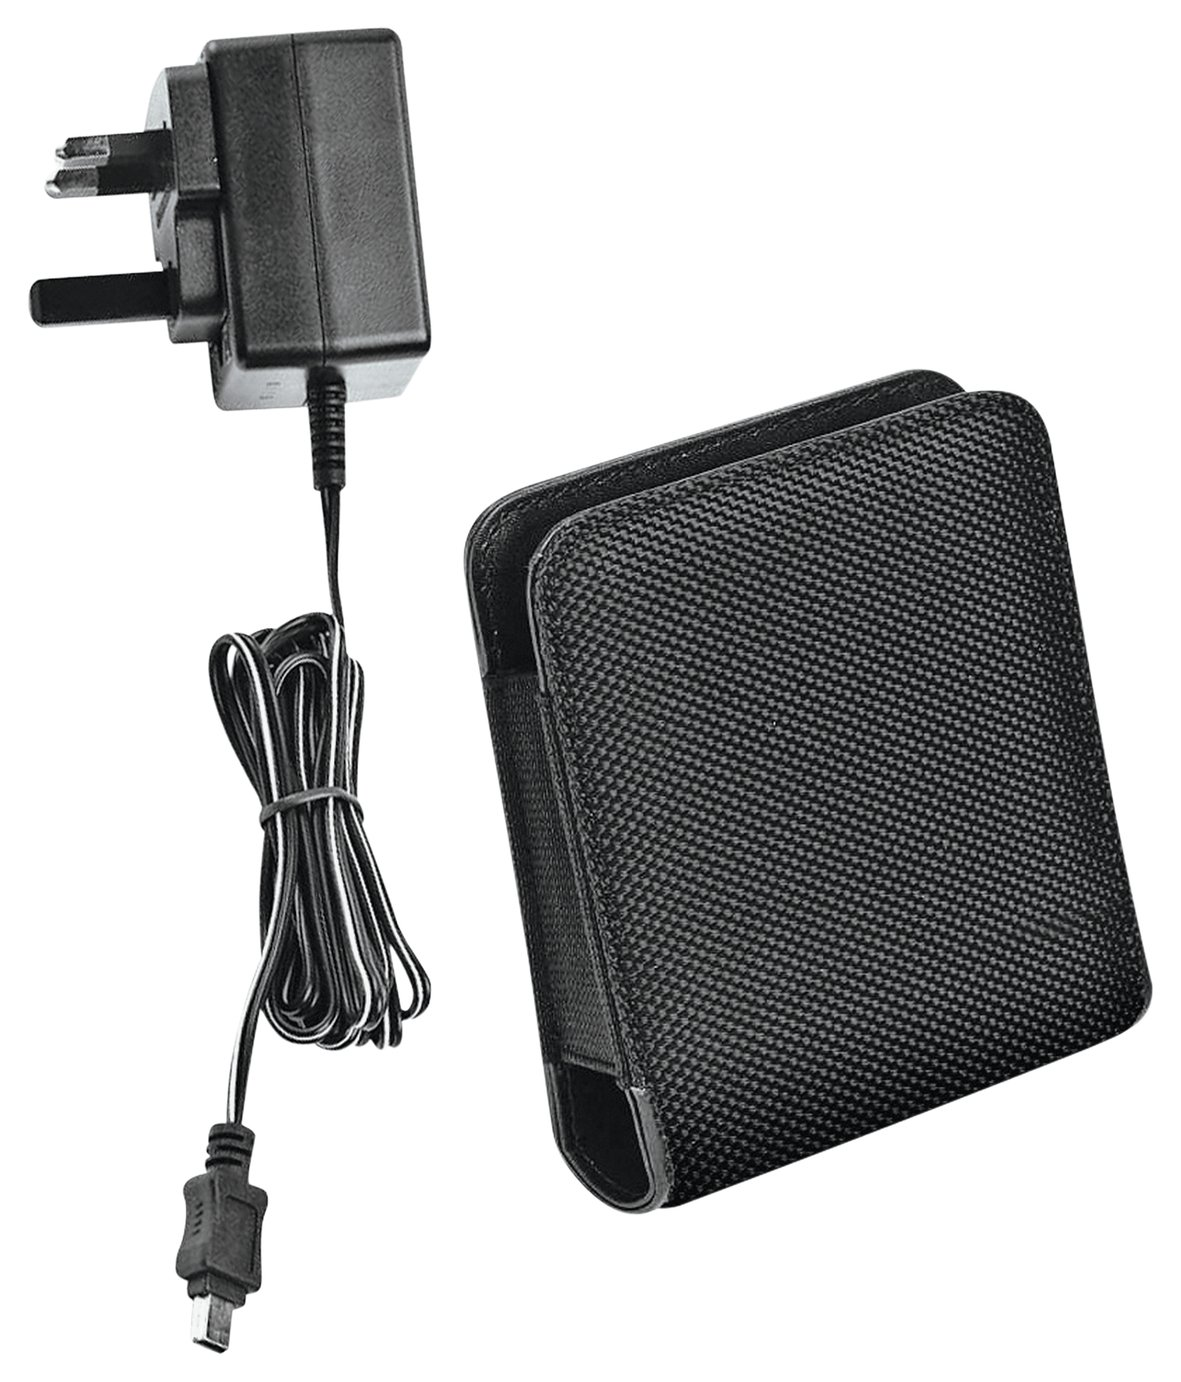 Image of Binatone F Series Sat Nav Accessory Kit